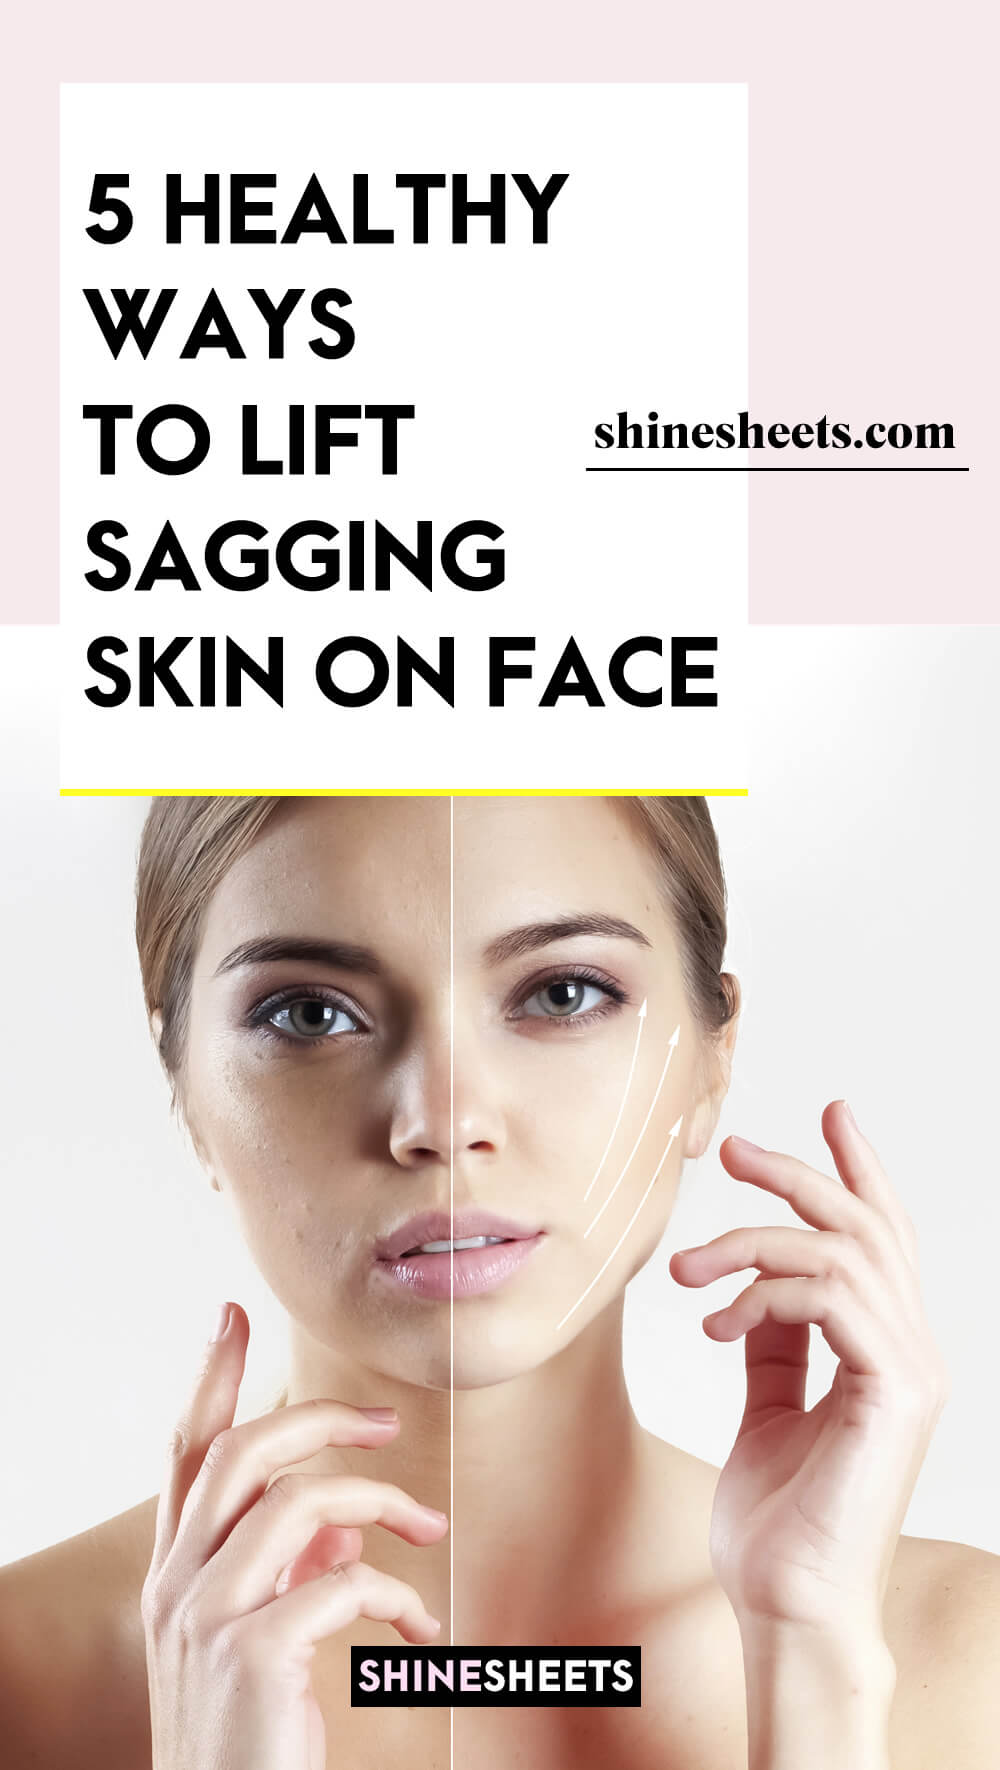 woman before after lifting sagging skin on face